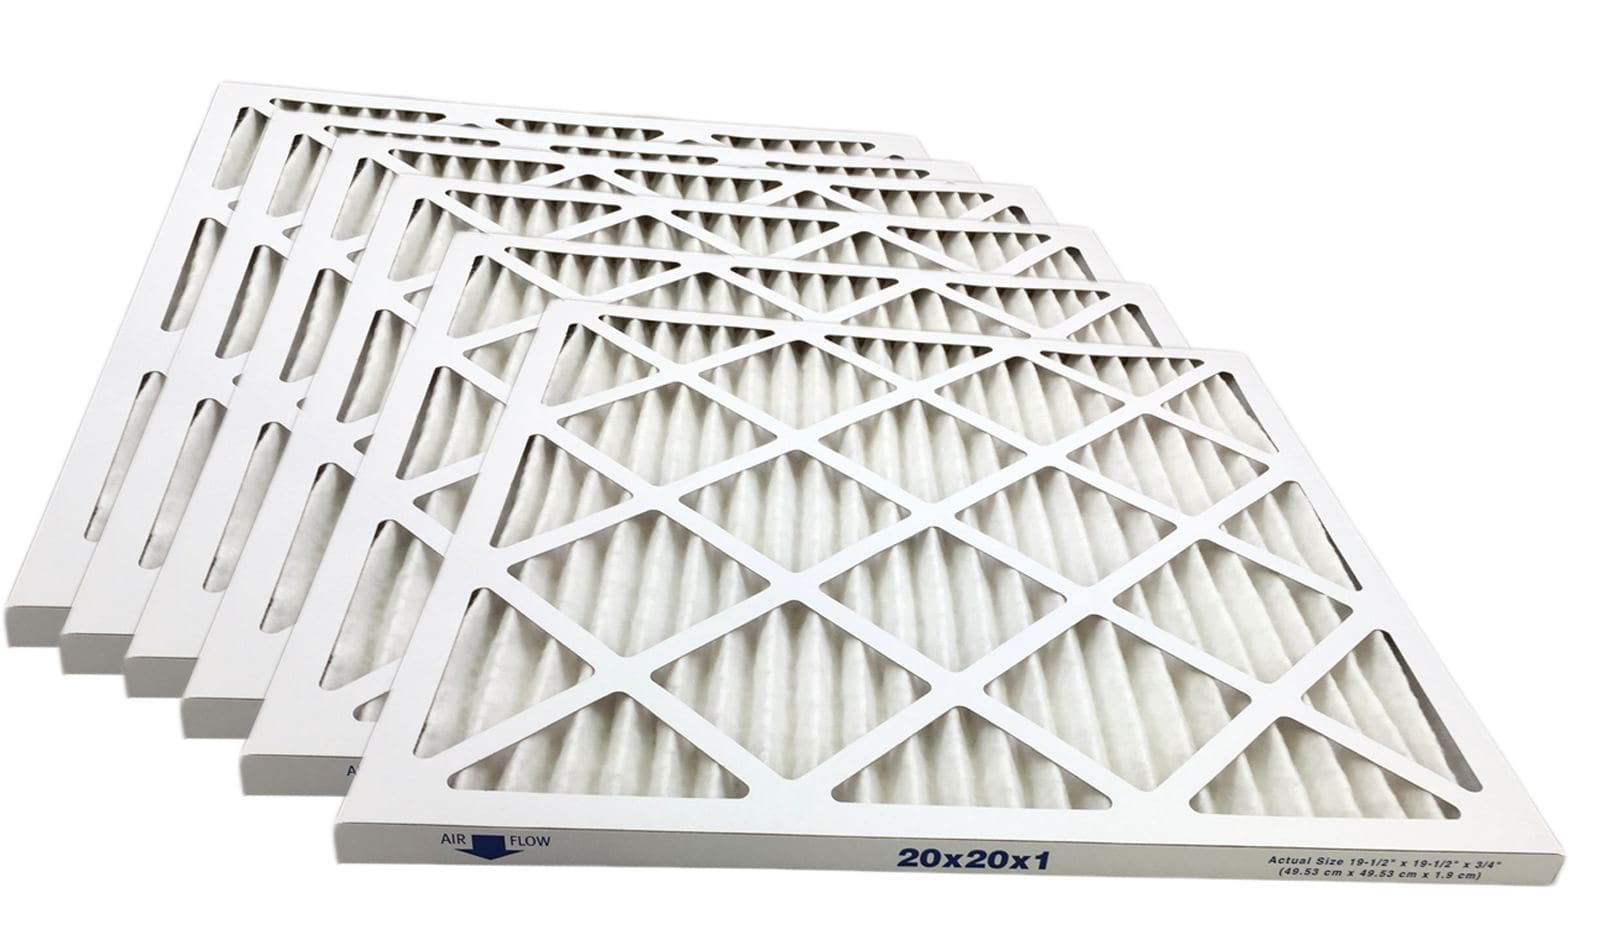 20x20x1 Merv 13 Pleated AC Furnace Filter - Case of 6 by Atomic